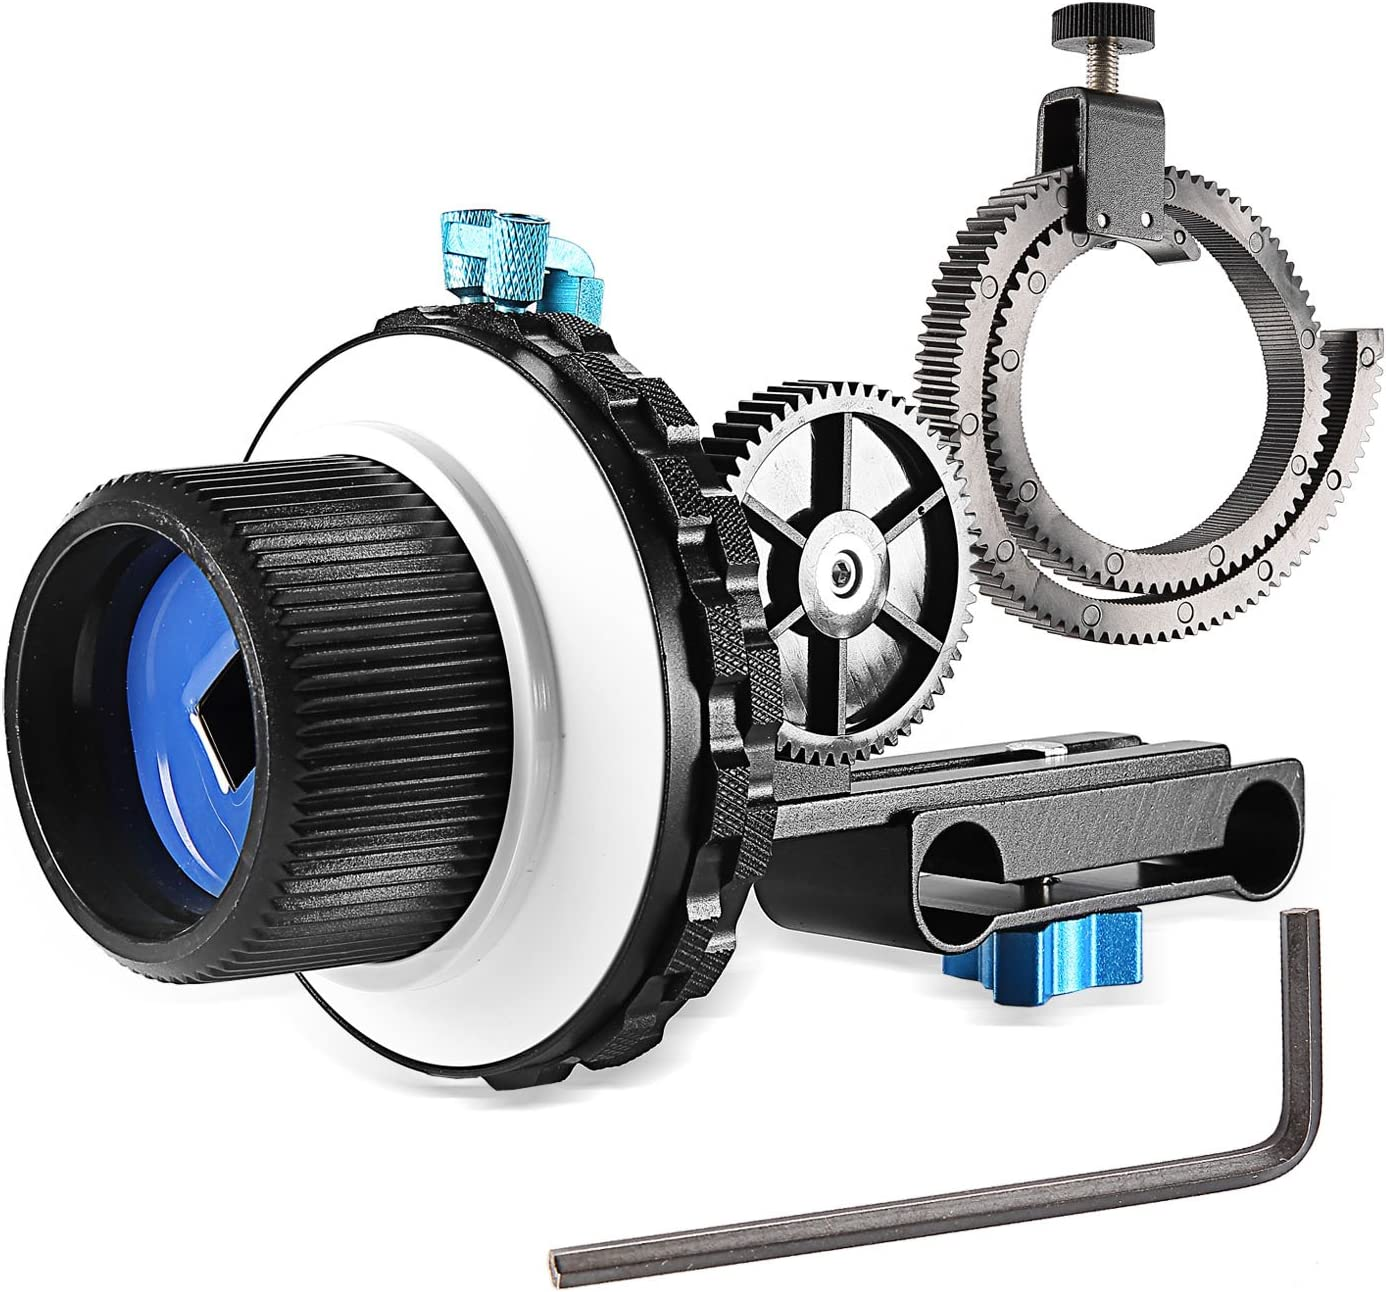 Neewer A-B Stop Follow Focus C2 with Ring Cam Quality inspection Belt for Gear DSLR Max 61% OFF